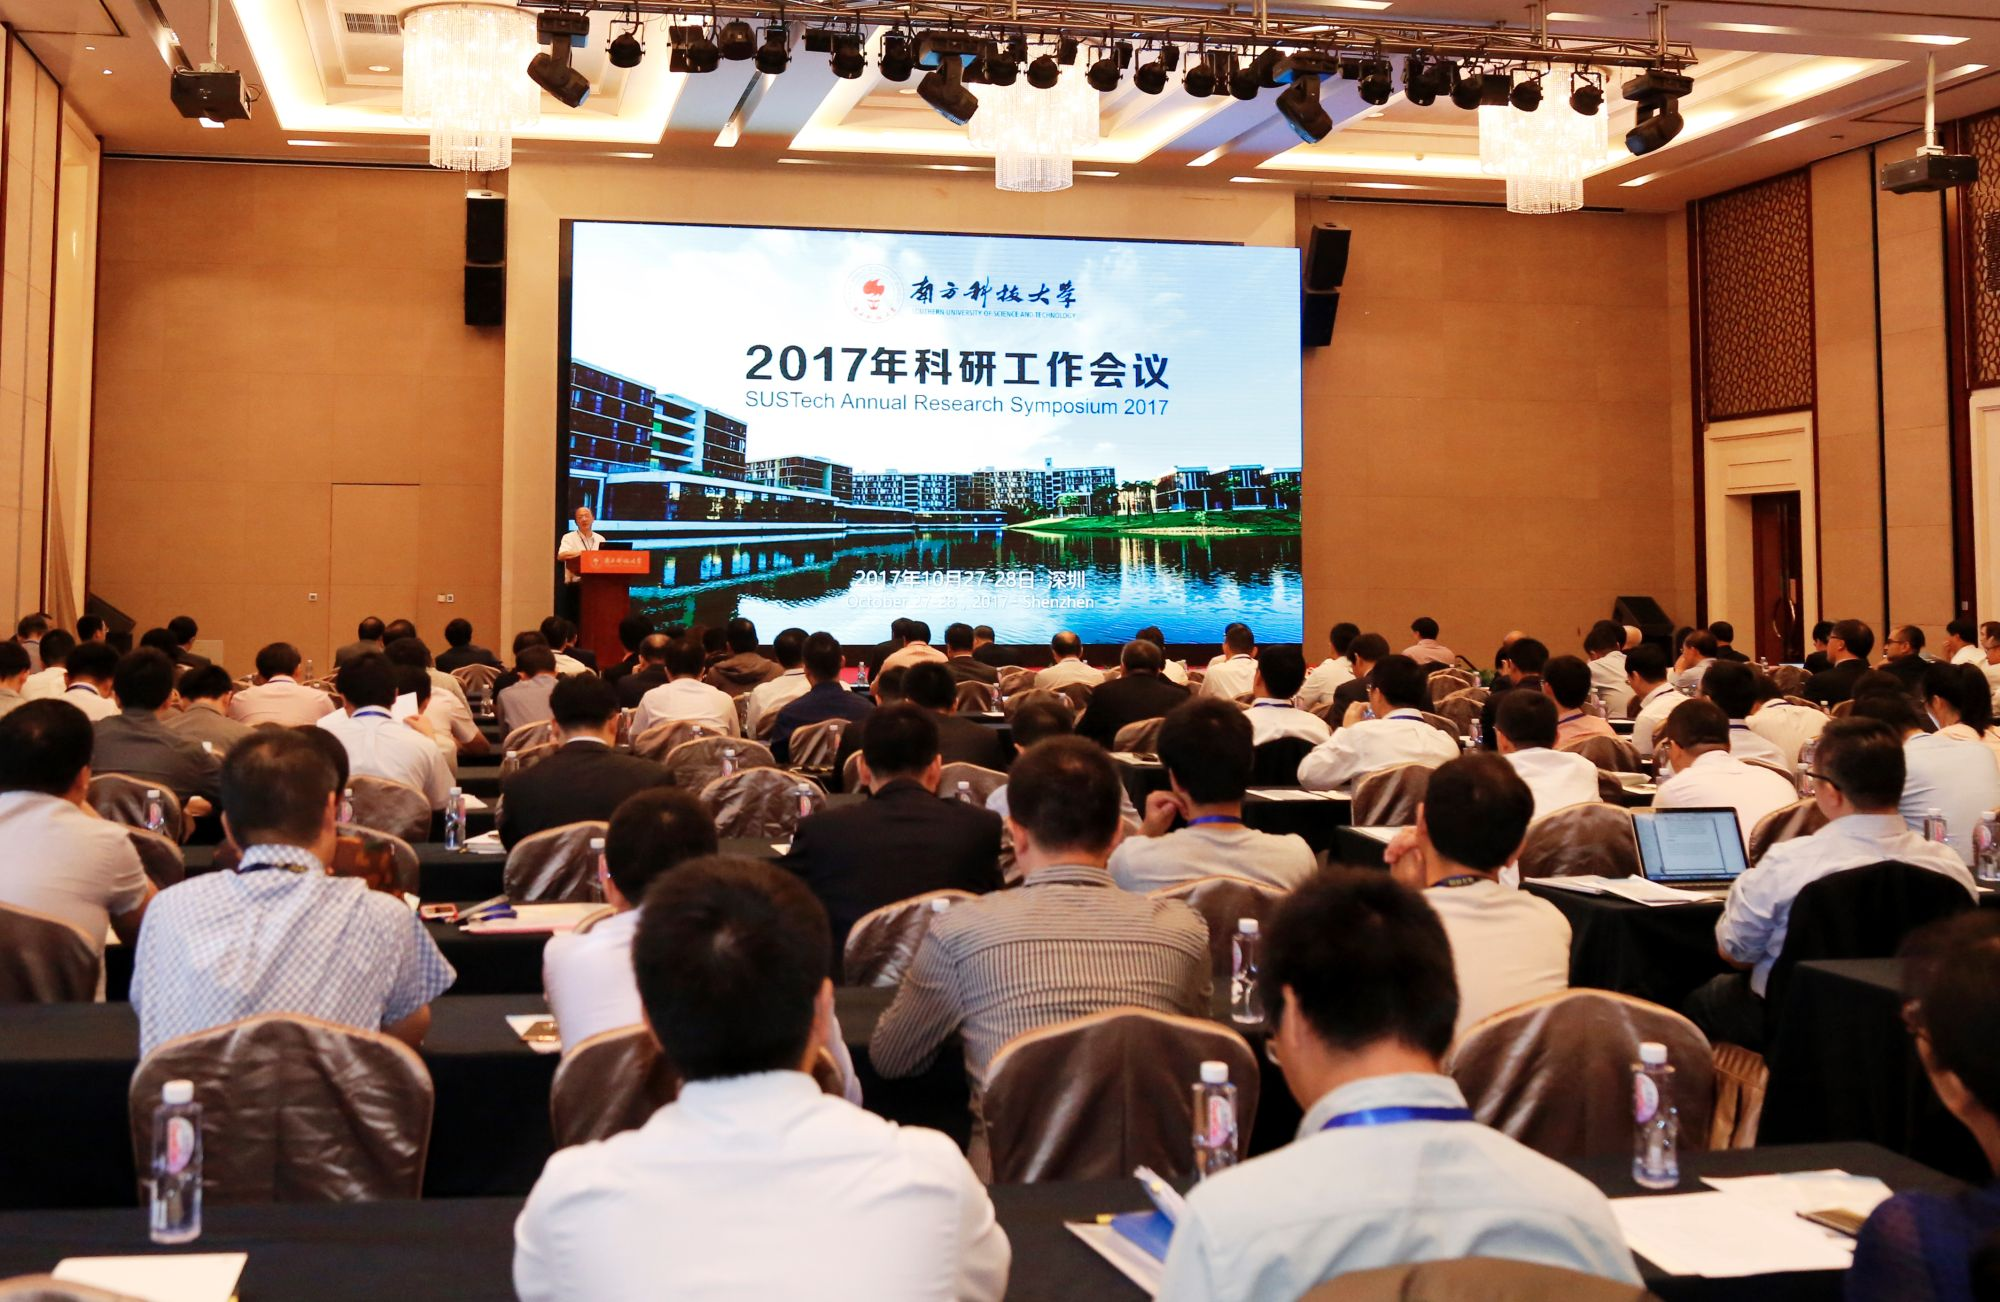 SUSTech Annual Research Symposium 2017 held